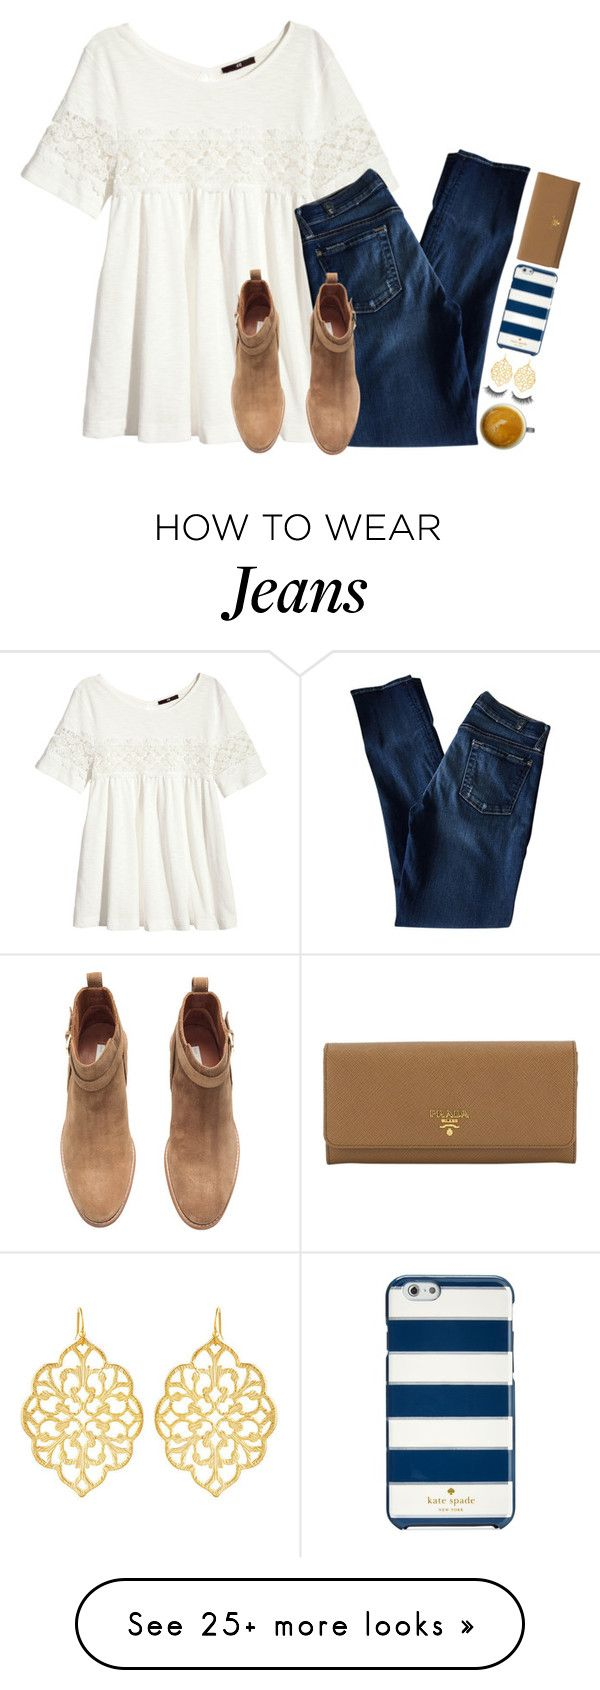 """{read d}"" by ellapearlrose on Polyvore featuring H&M, 7 For All Mankind, Kate Spade, Prada, Susan Shaw and Rimini"